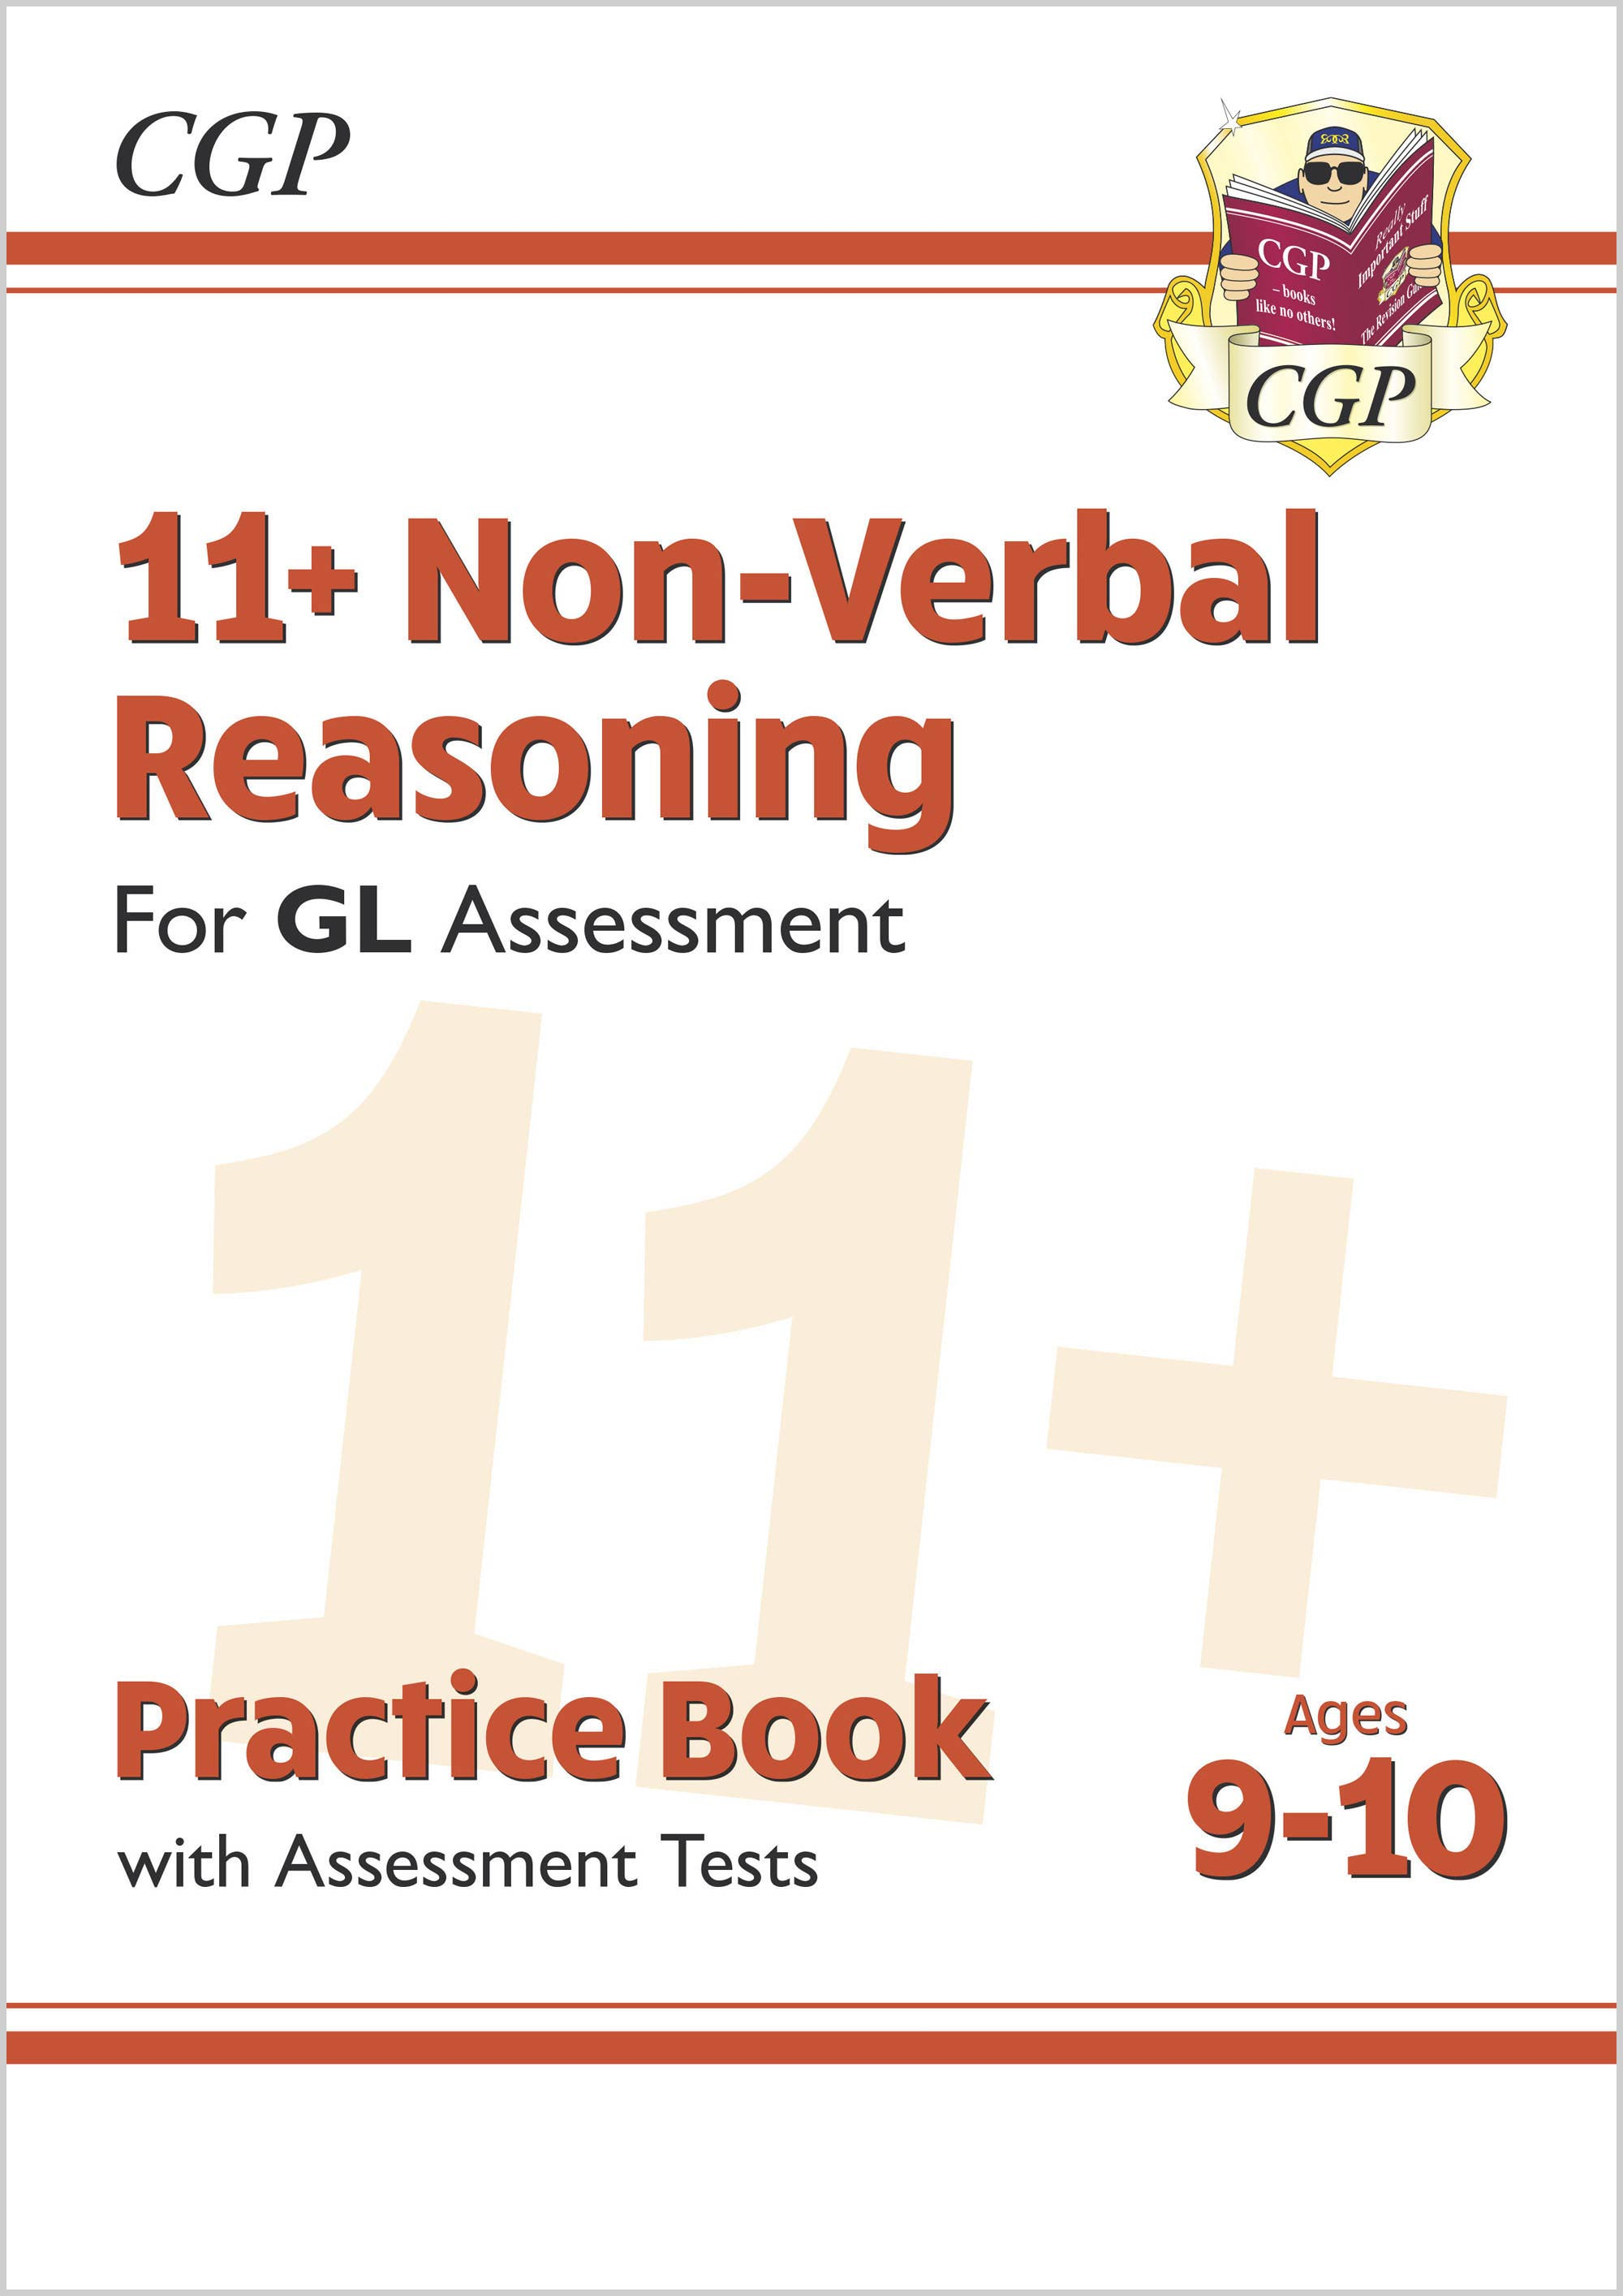 N5QE2DK - New 11+ GL Non-Verbal Reasoning Practice Book & Assessment Tests - Ages 9-10